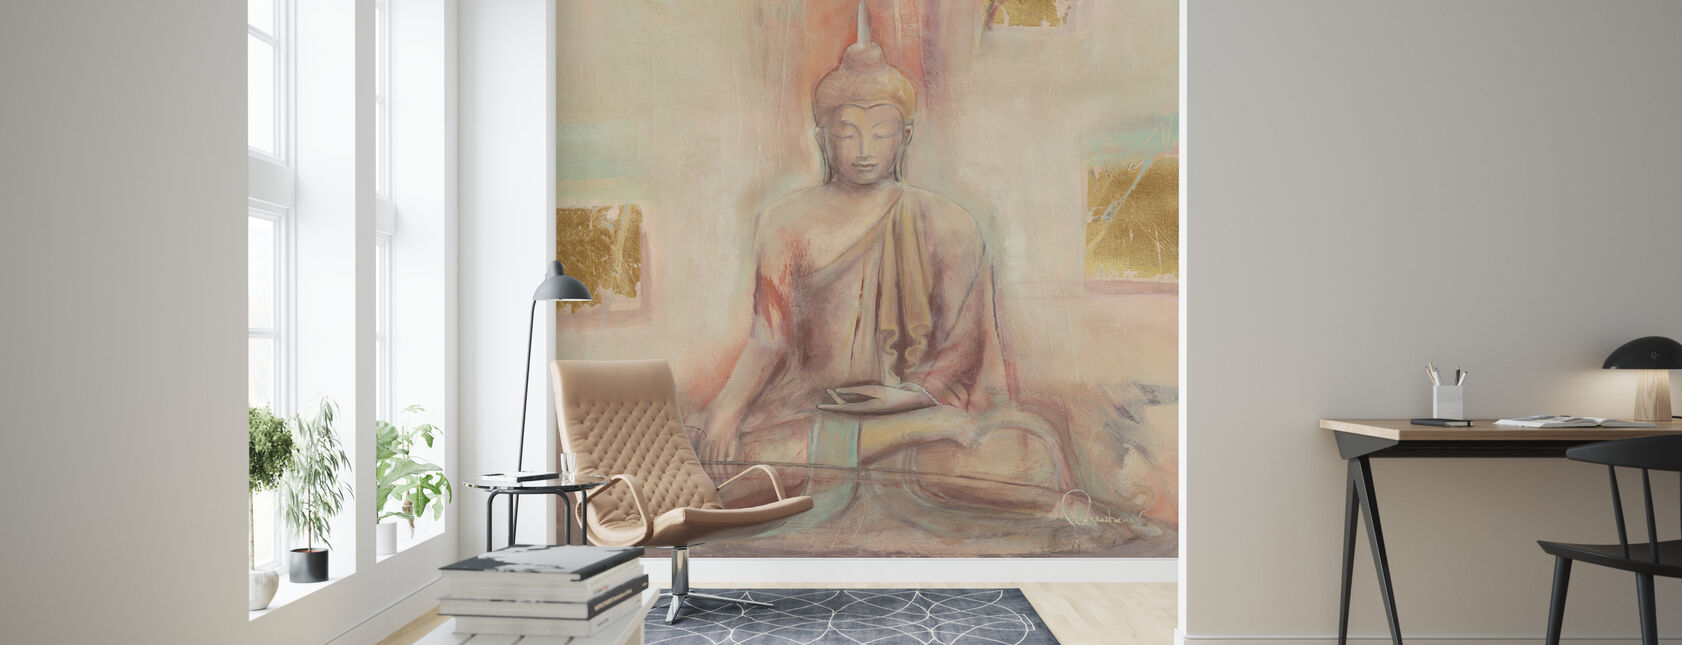 Buddha I - Wallpaper - Living Room